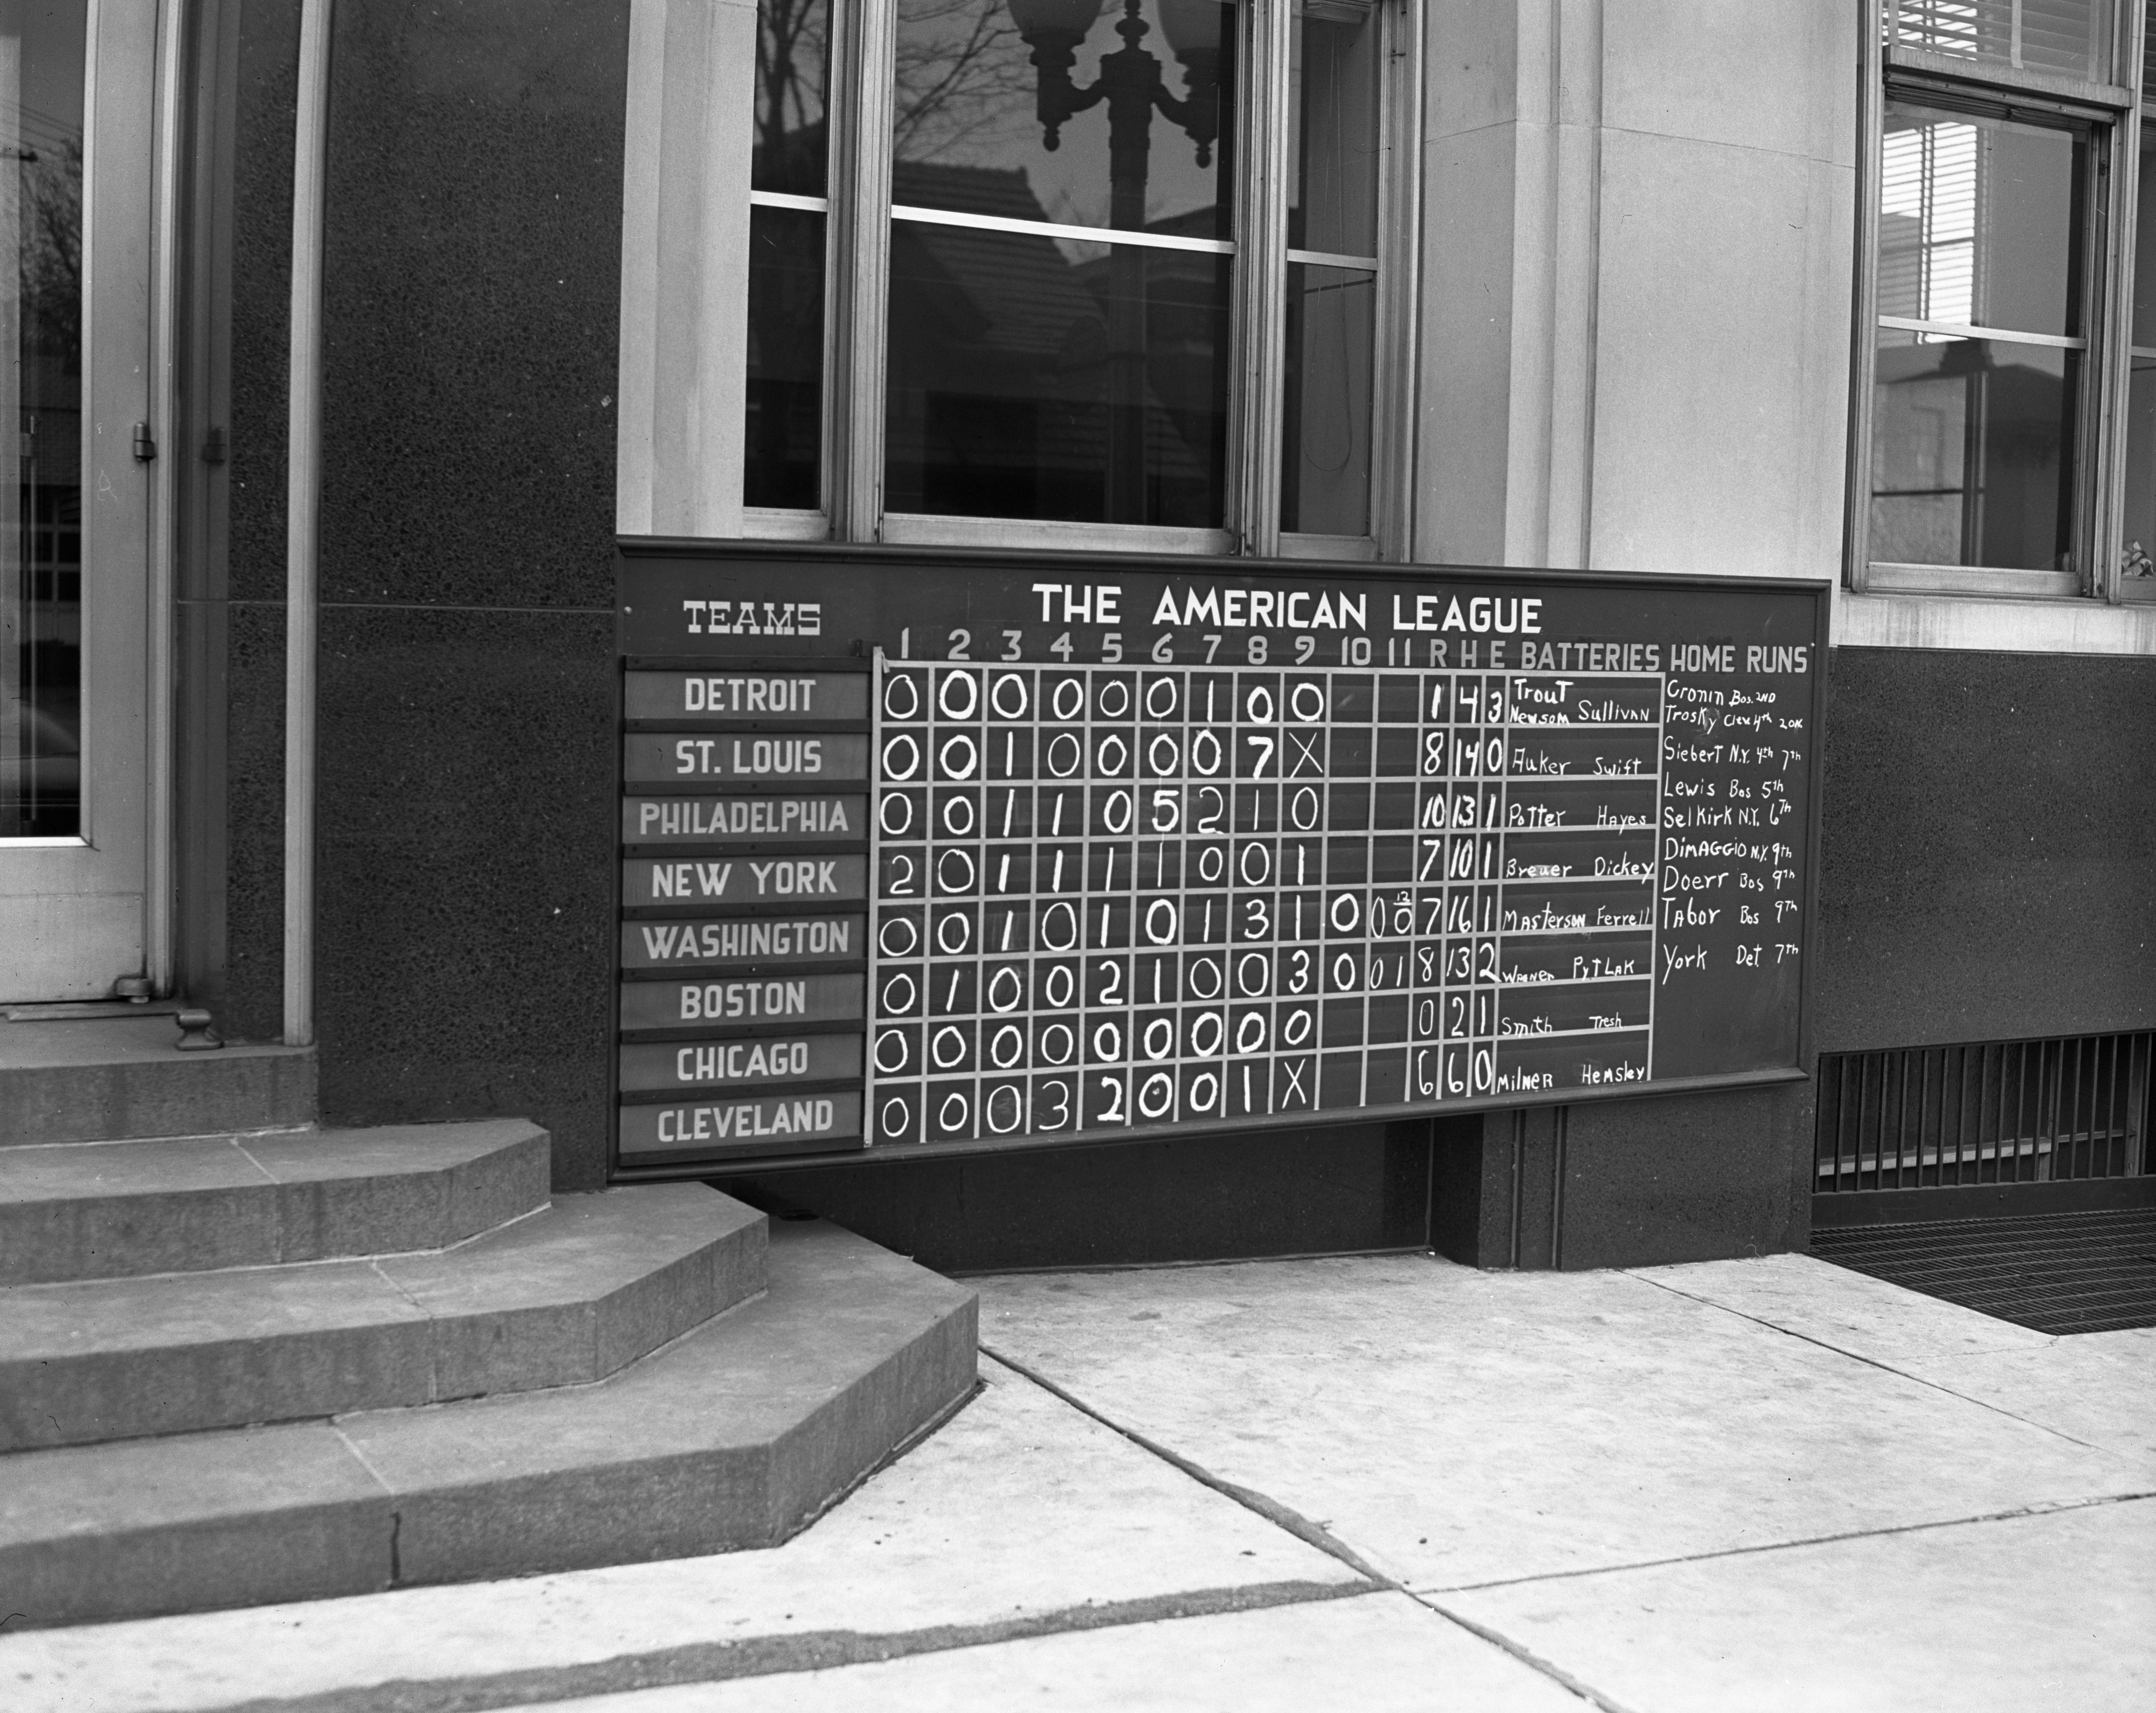 Baseball Scoreboard at the Ann Arbor News, 1941 image